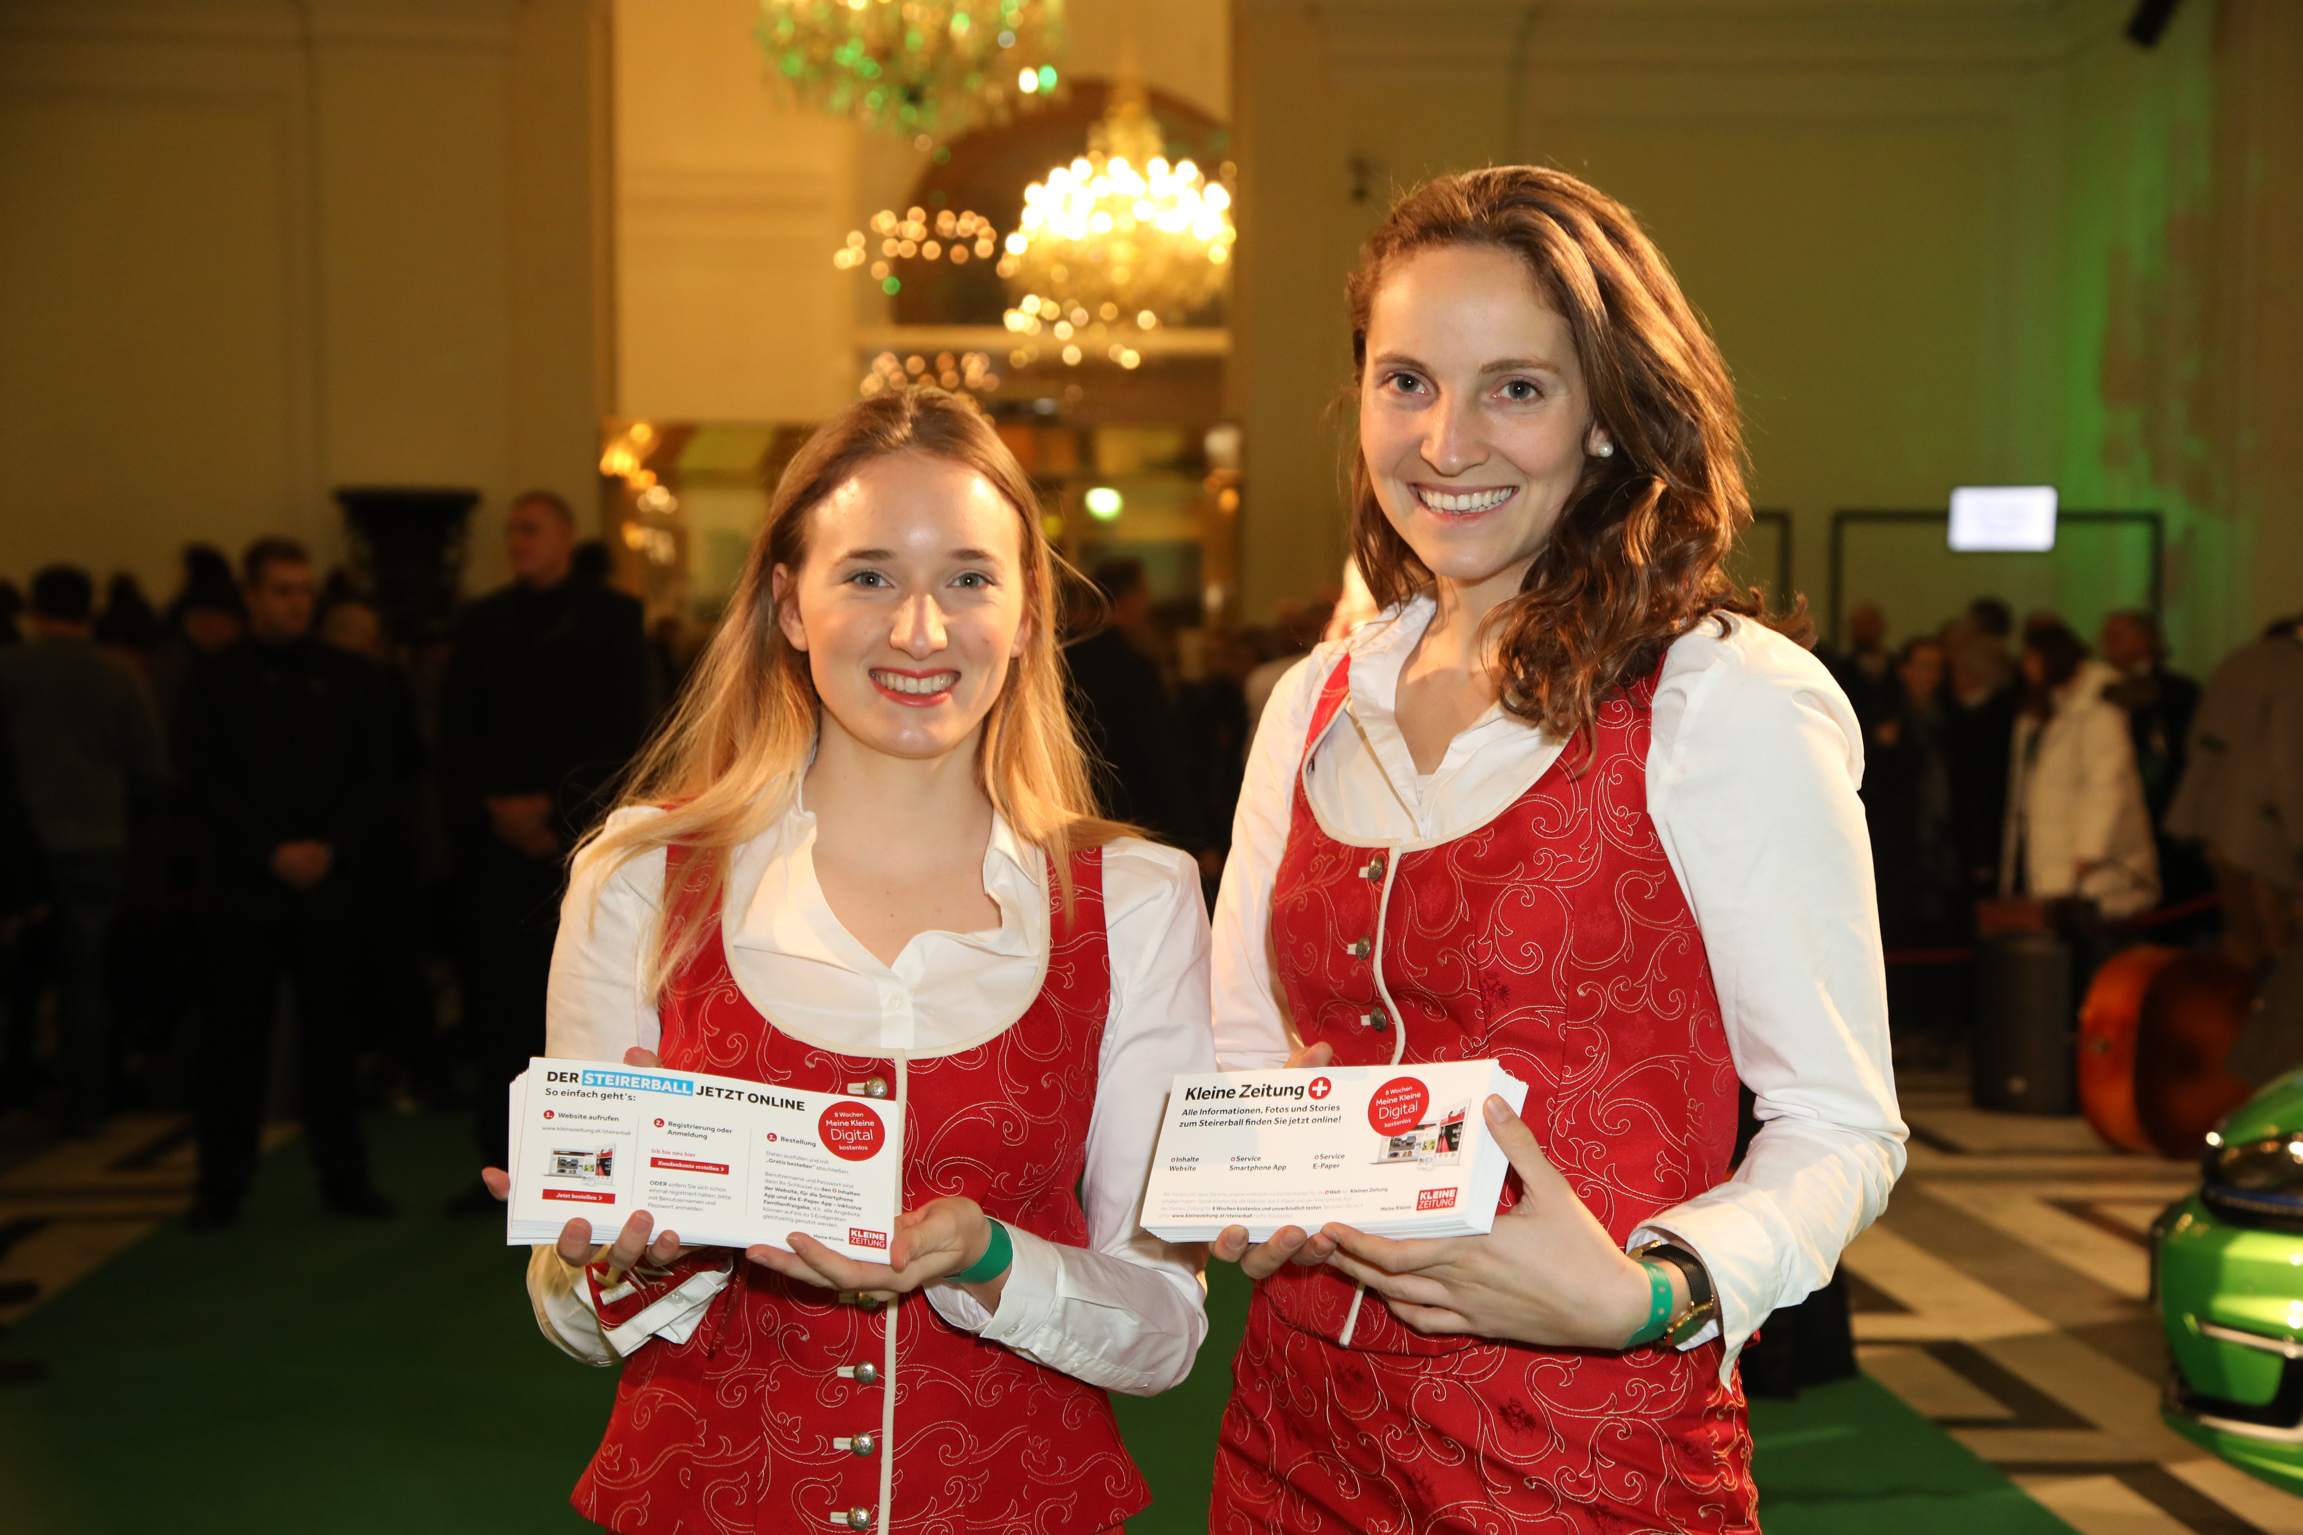 Verein der Steirer Steirerball 2017, Eventorganisation by KOOP Live Marketing Eventagentur in Wien